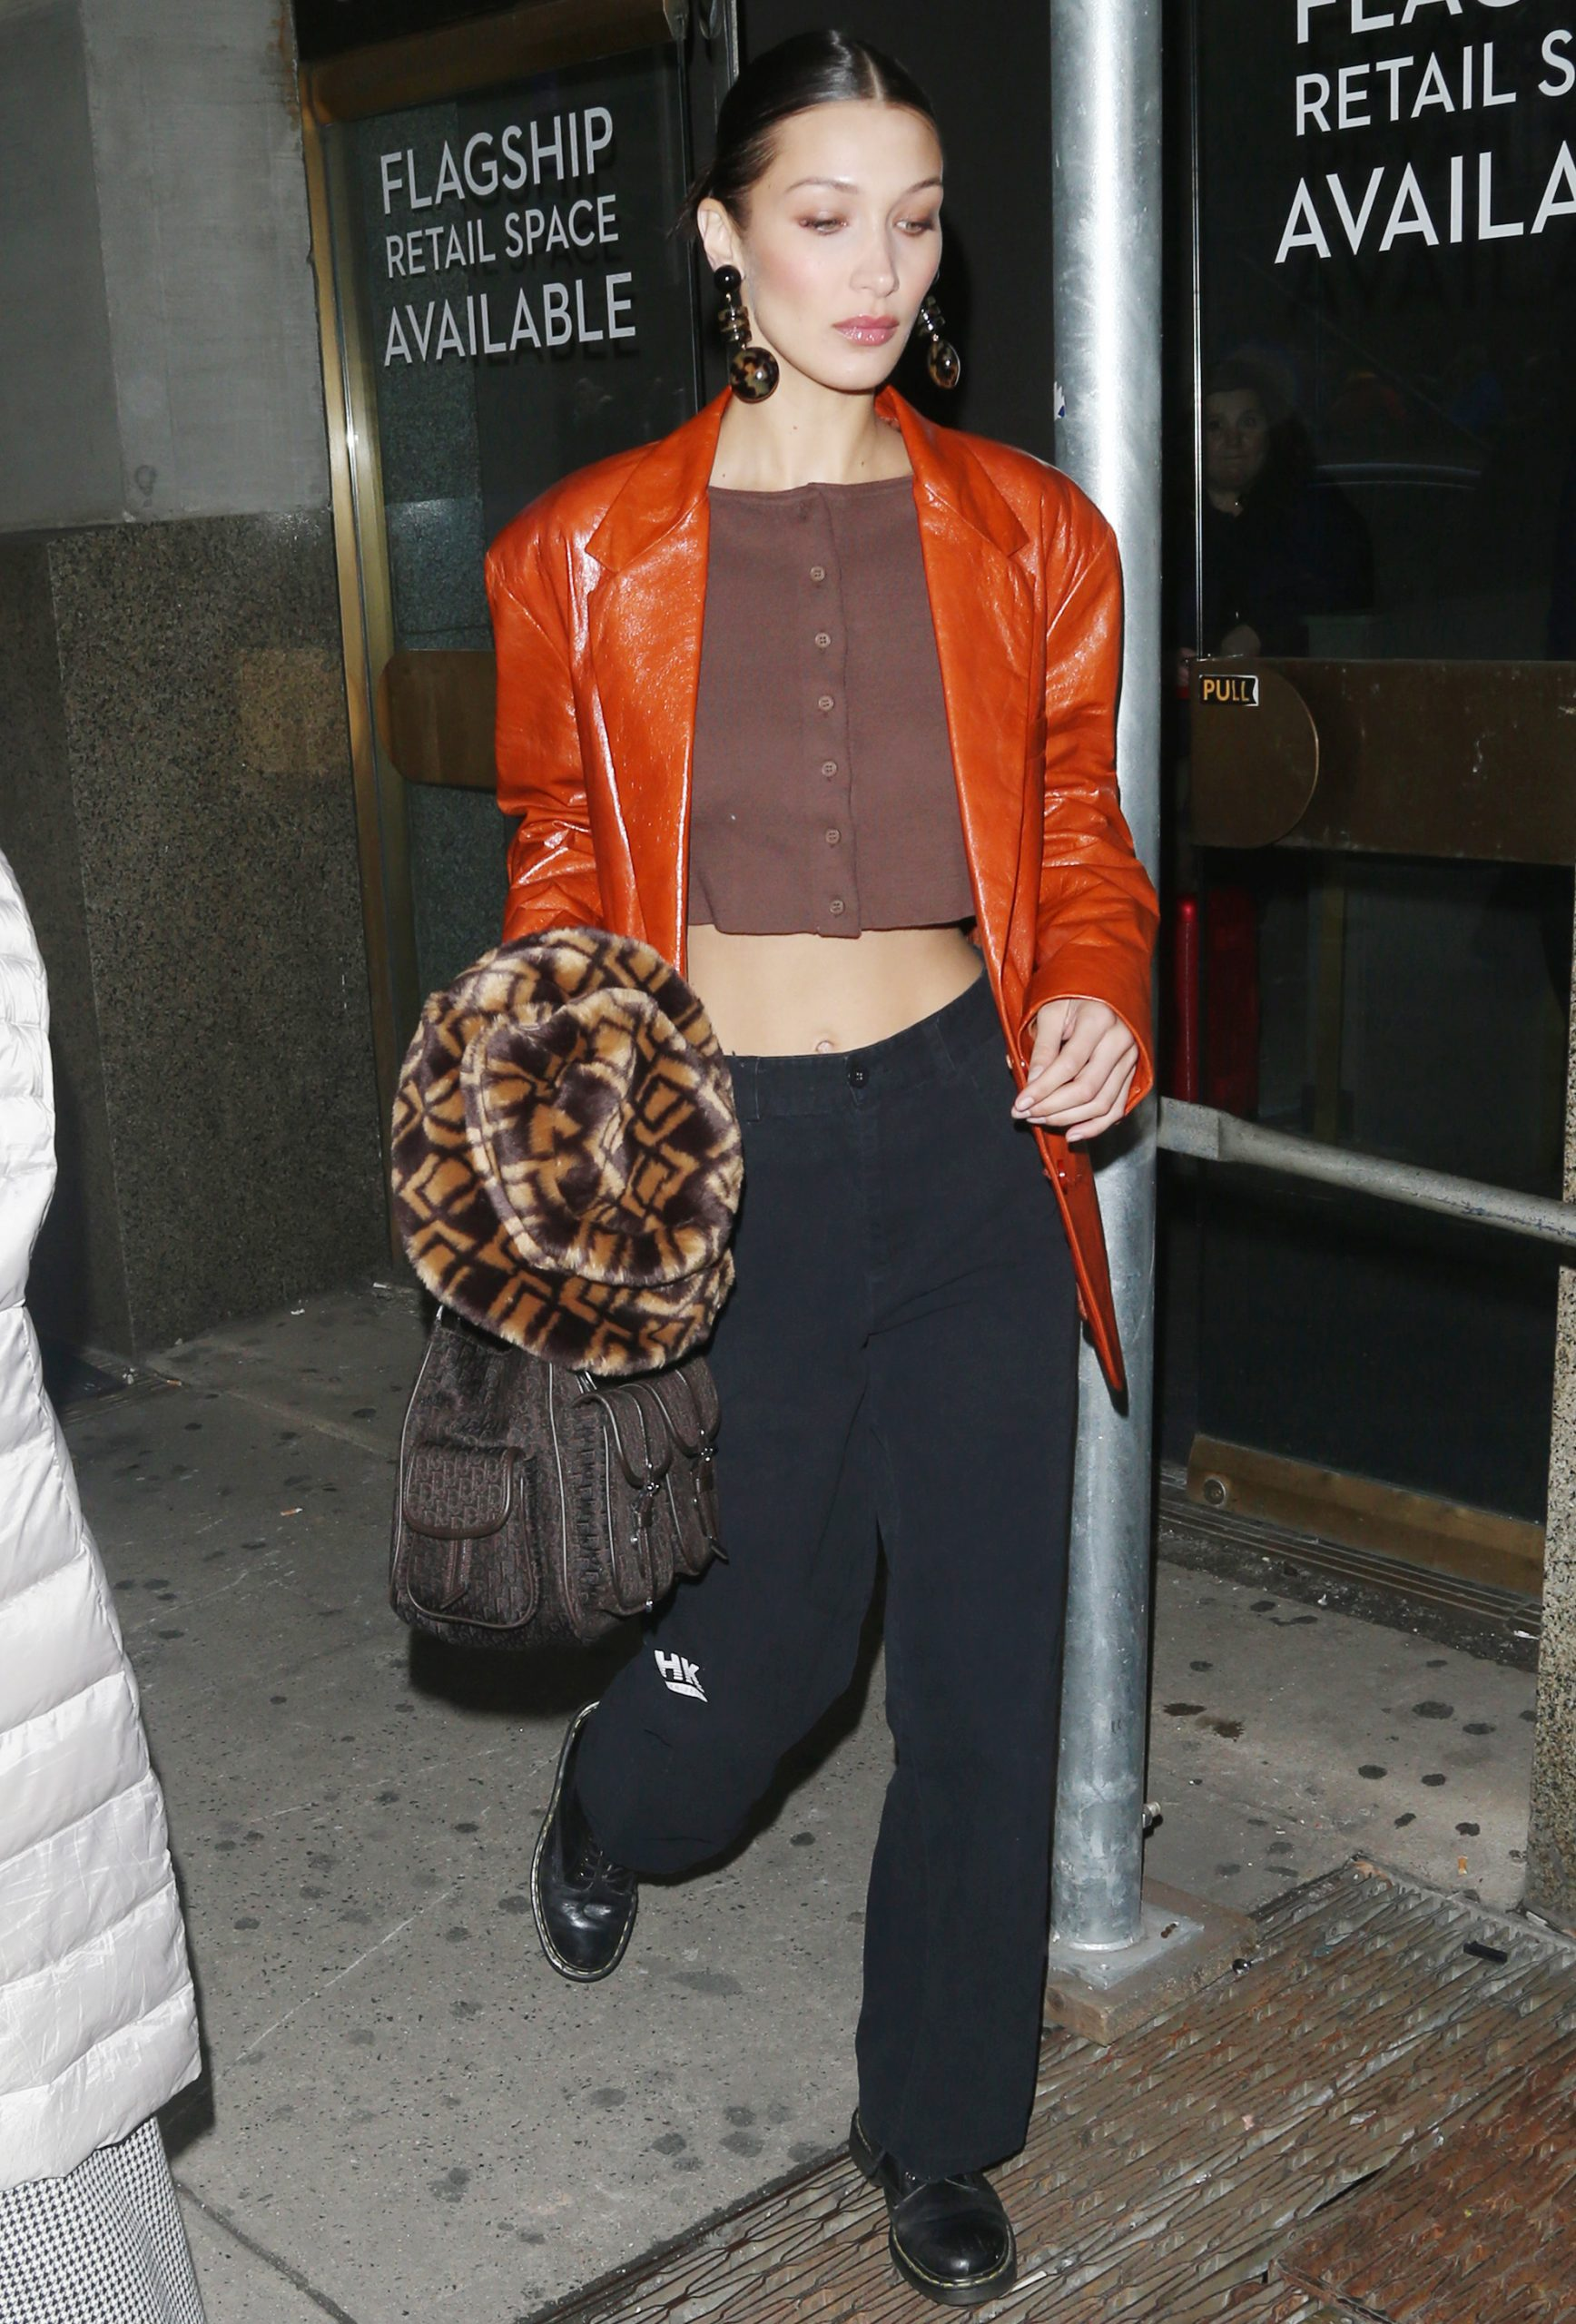 Bella Hadid signs autographs as she makes her way through her car in New York City